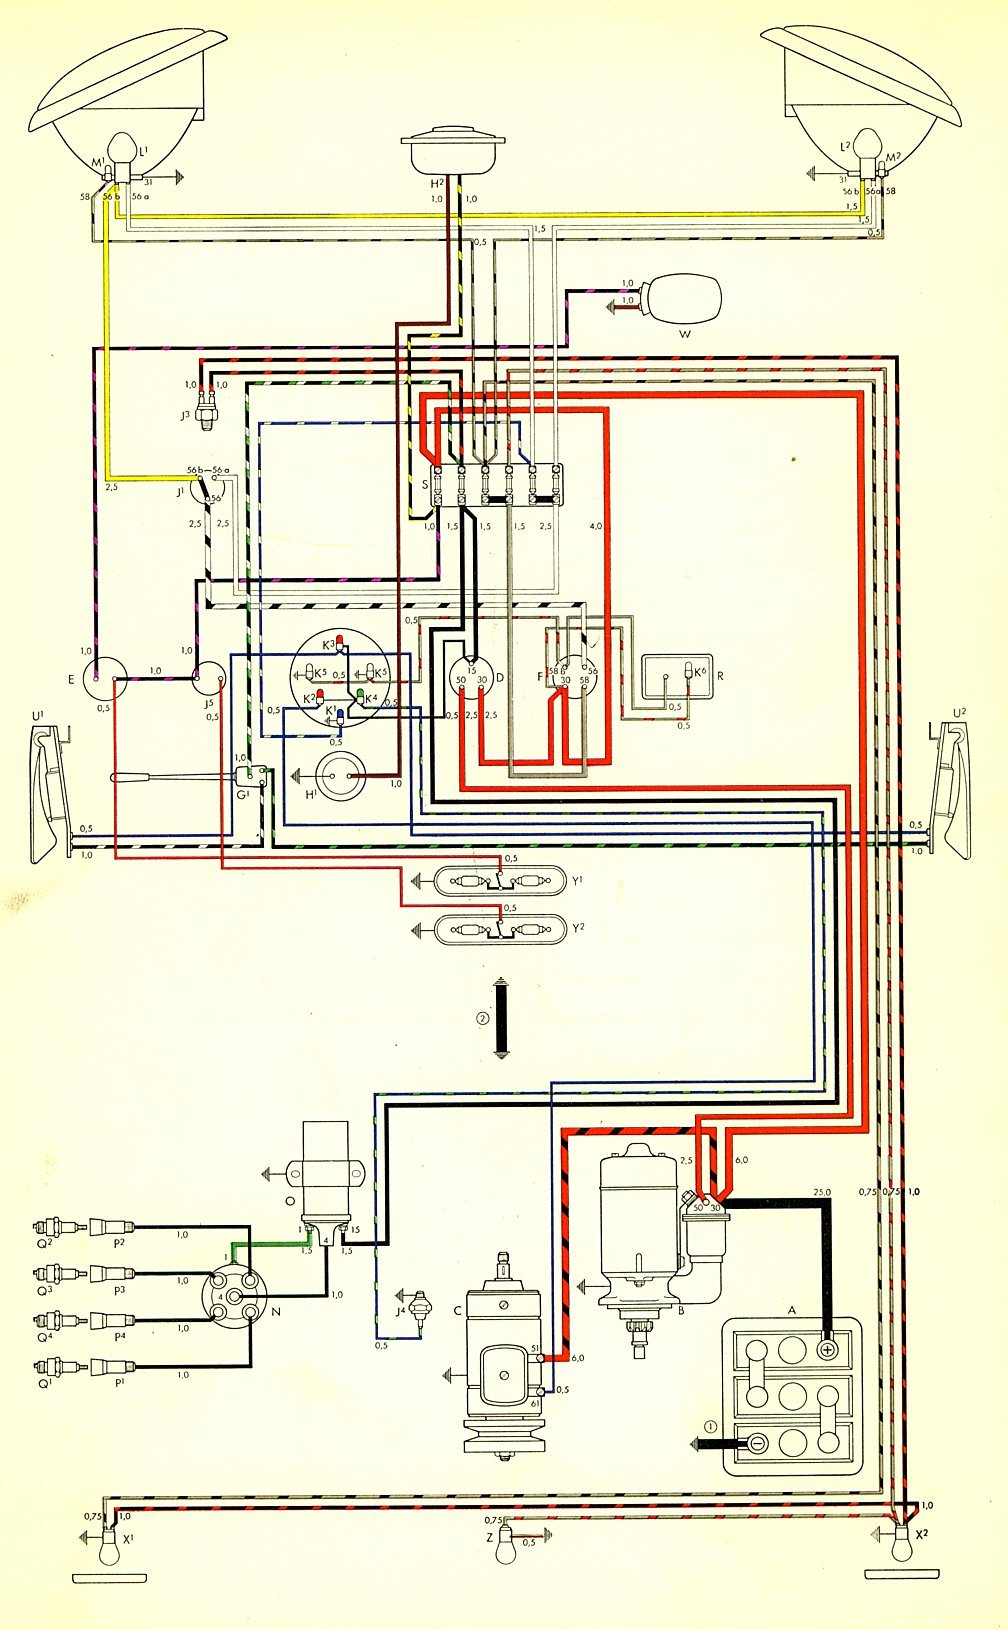 Type 2 Wiring Diagrams 1960 Ford Diagram